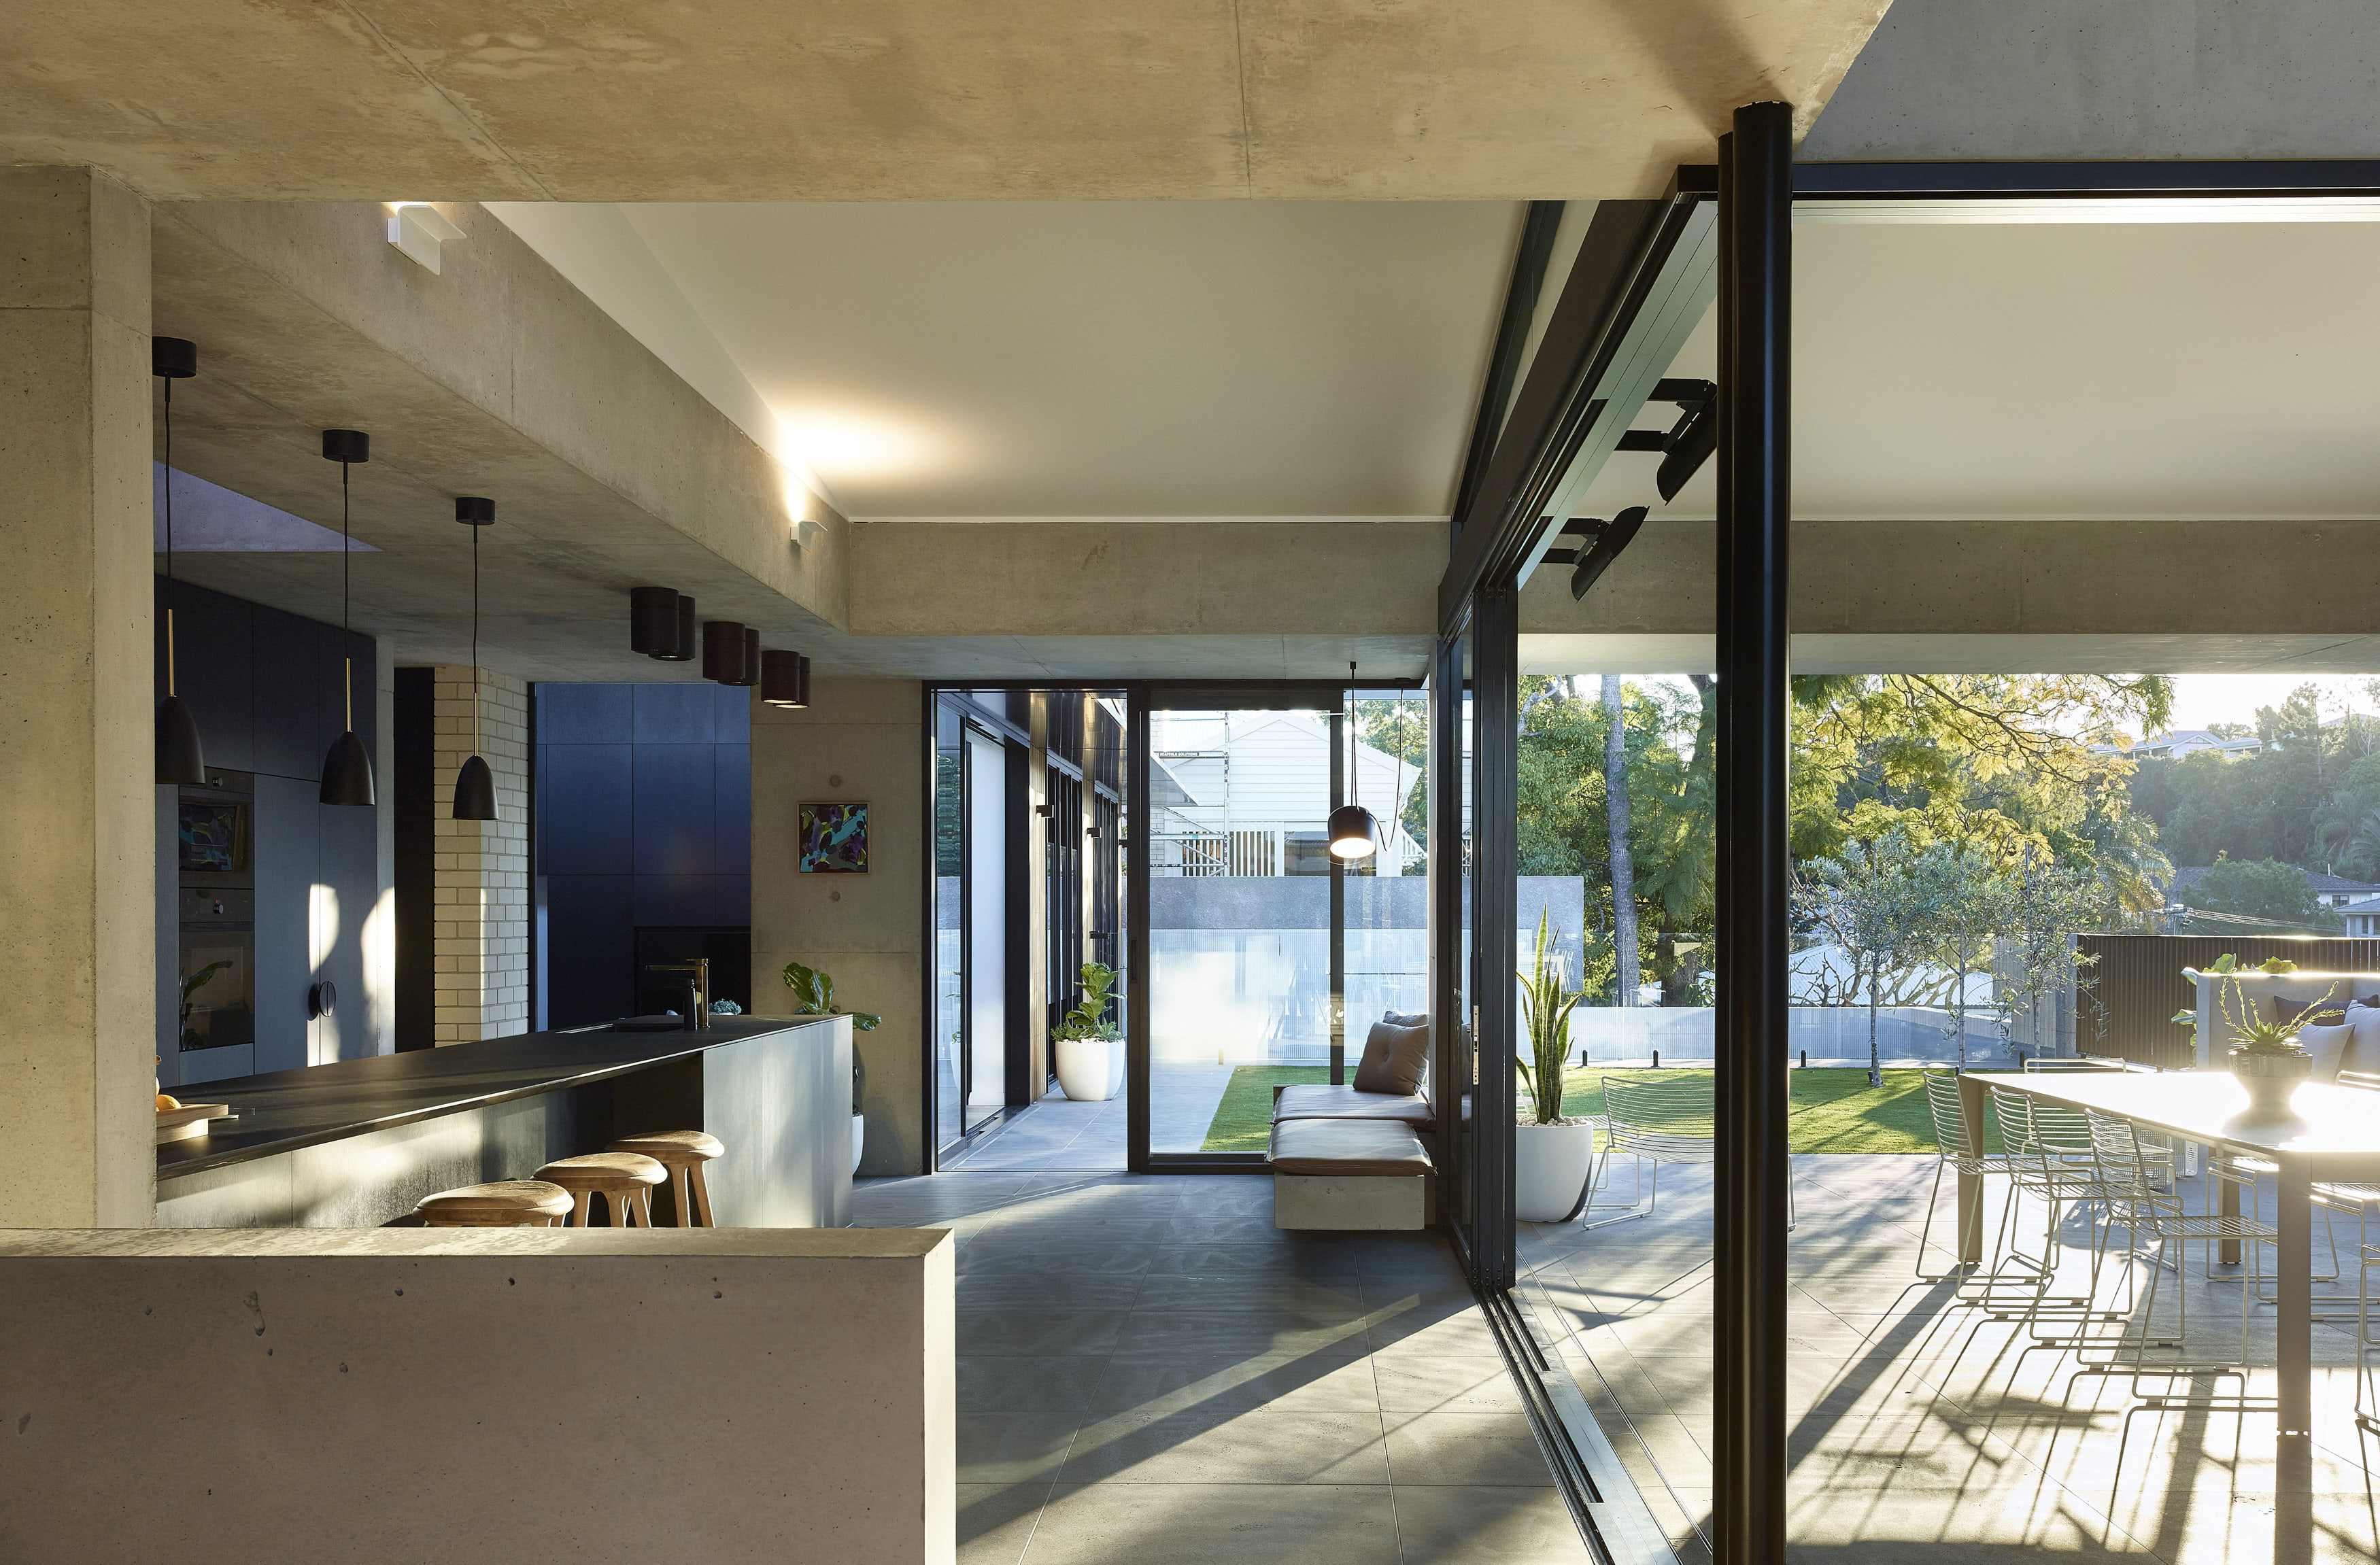 Gallery Of Sorrel Street By Shaun Lockyer Architects Local Australian Design And Interiors Paddington, Qld Image 18 Min